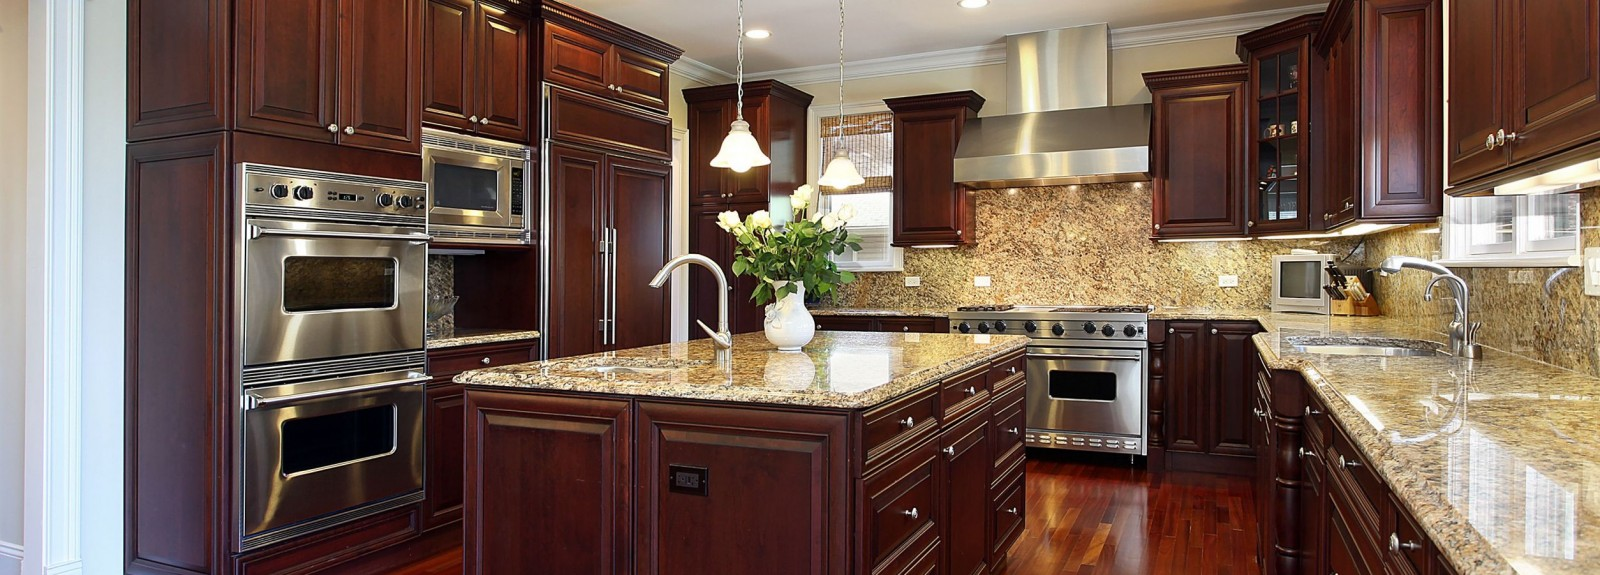 Kitchen with the darker cherry color cabinets